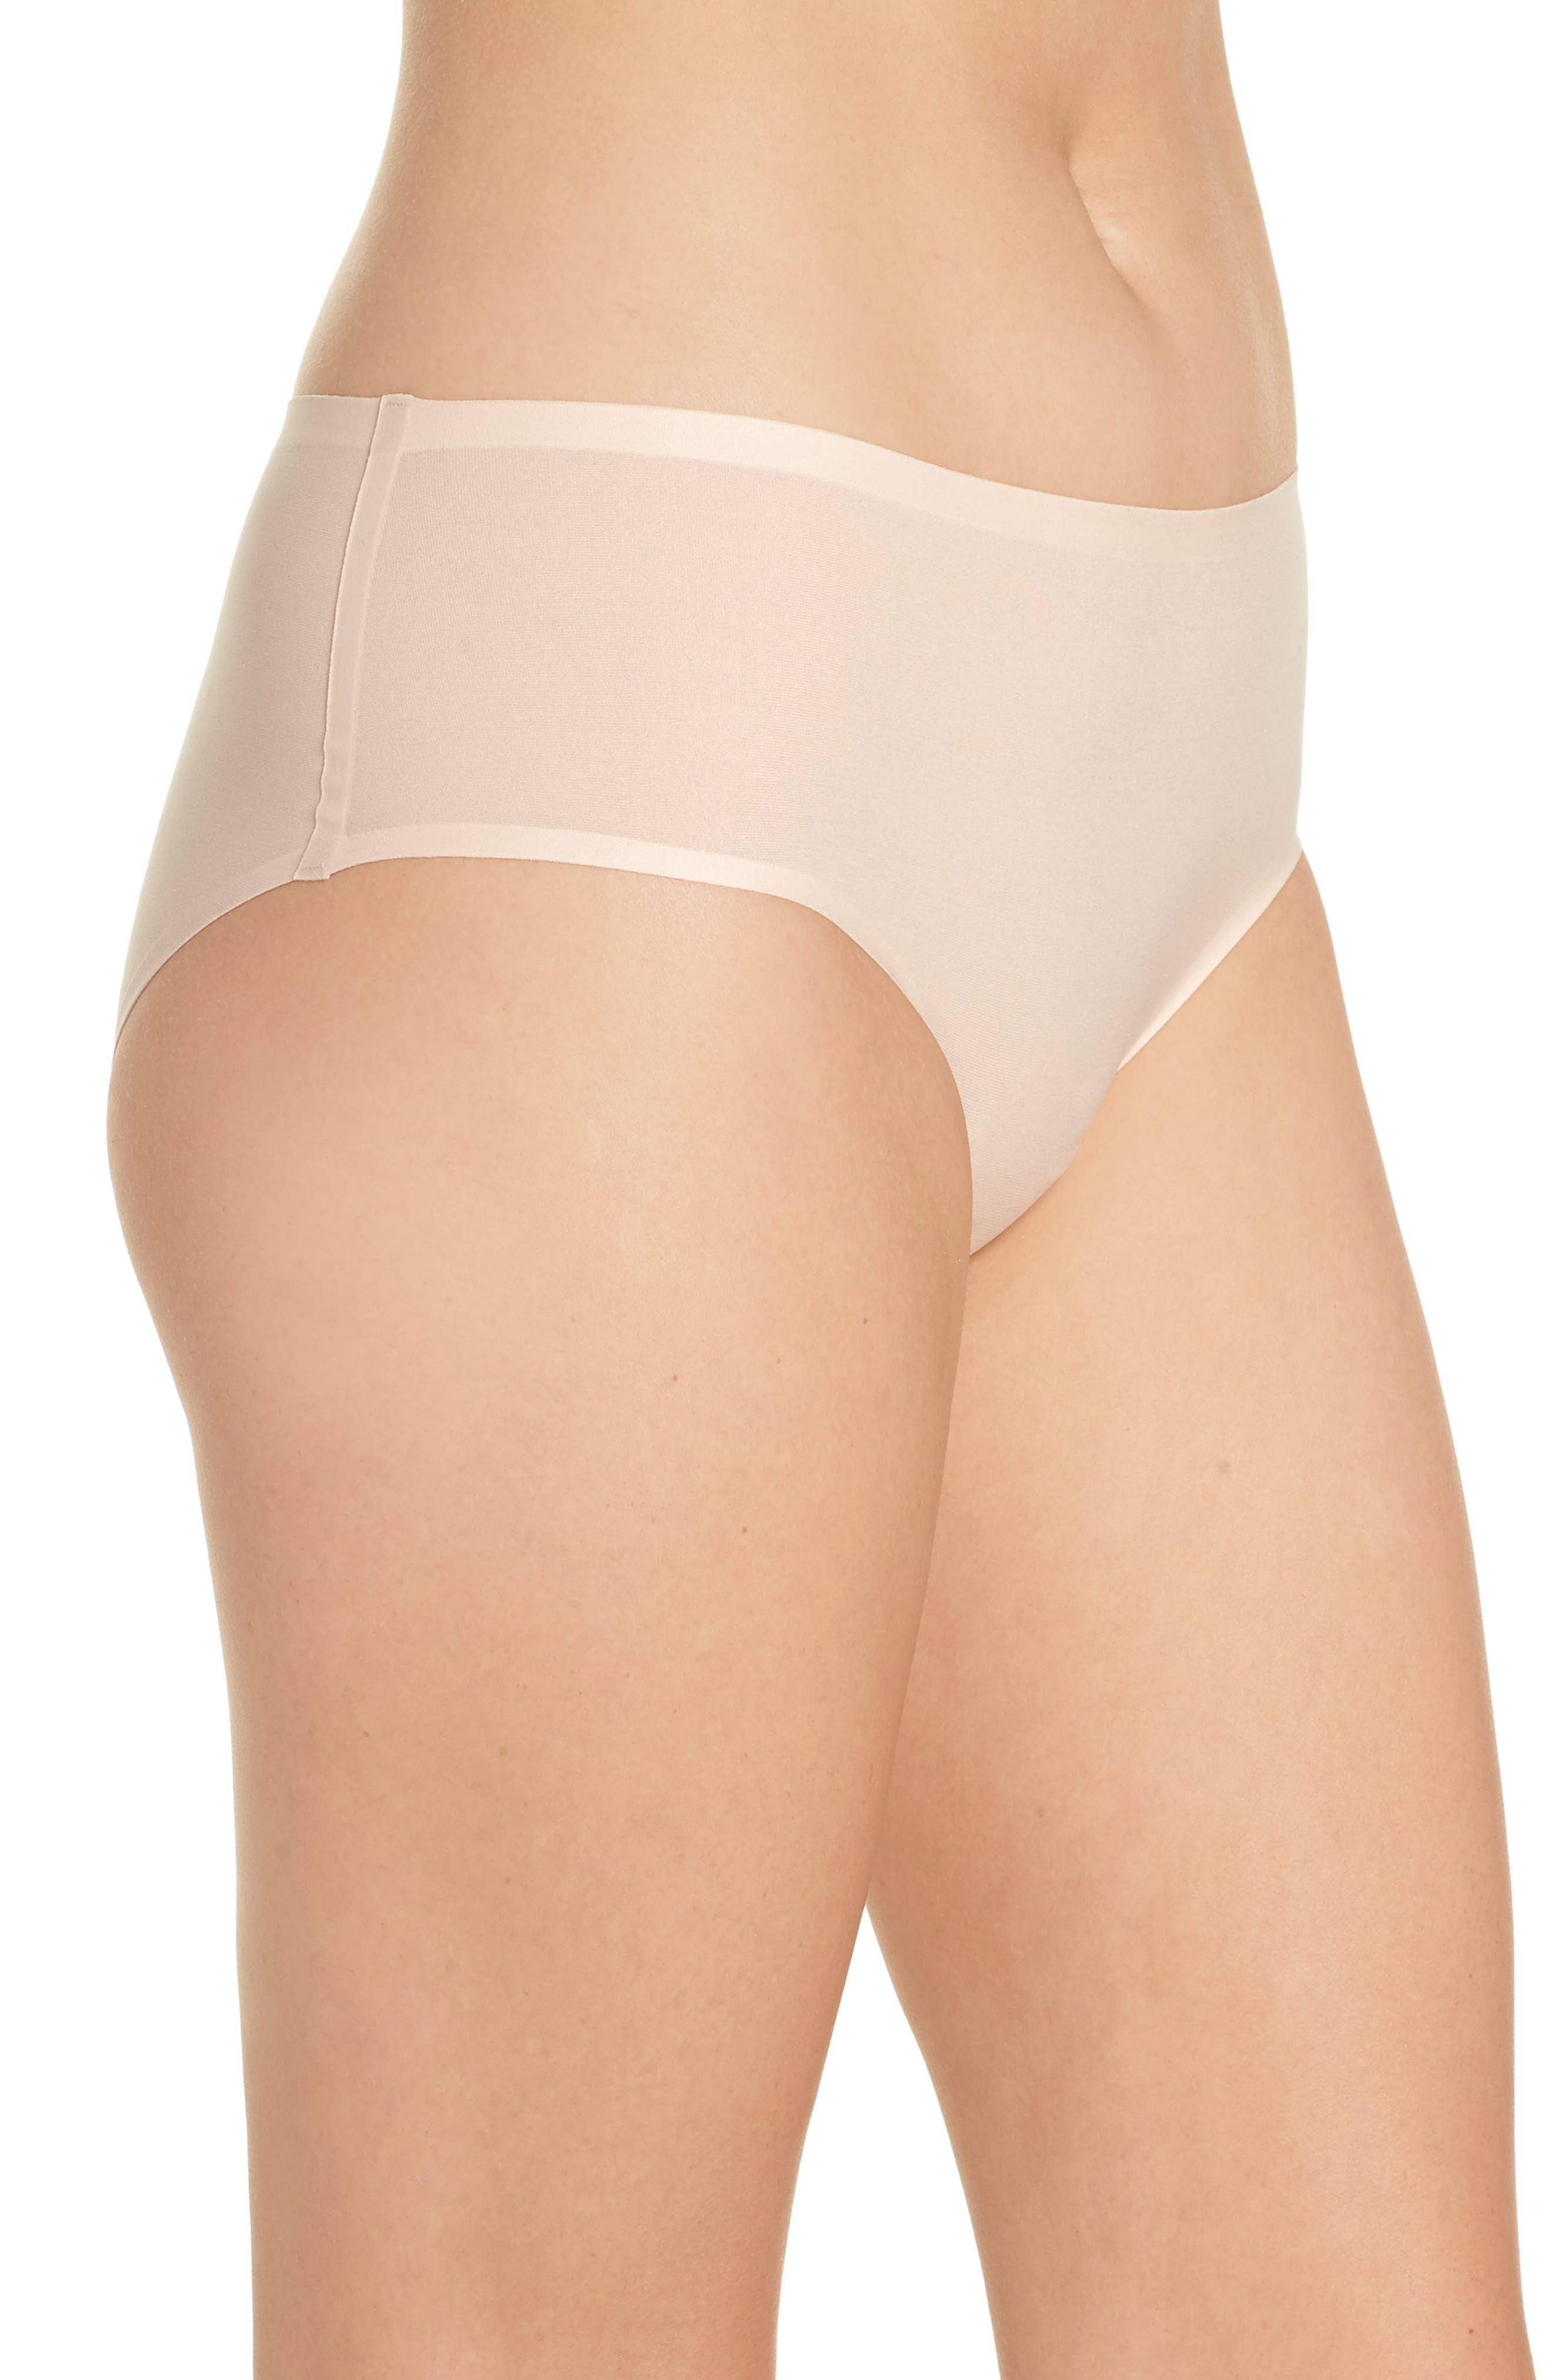 Soft Stretch Seamless Hipster Panties,                             Alternate thumbnail 3, color,                             NUDE BLUSH